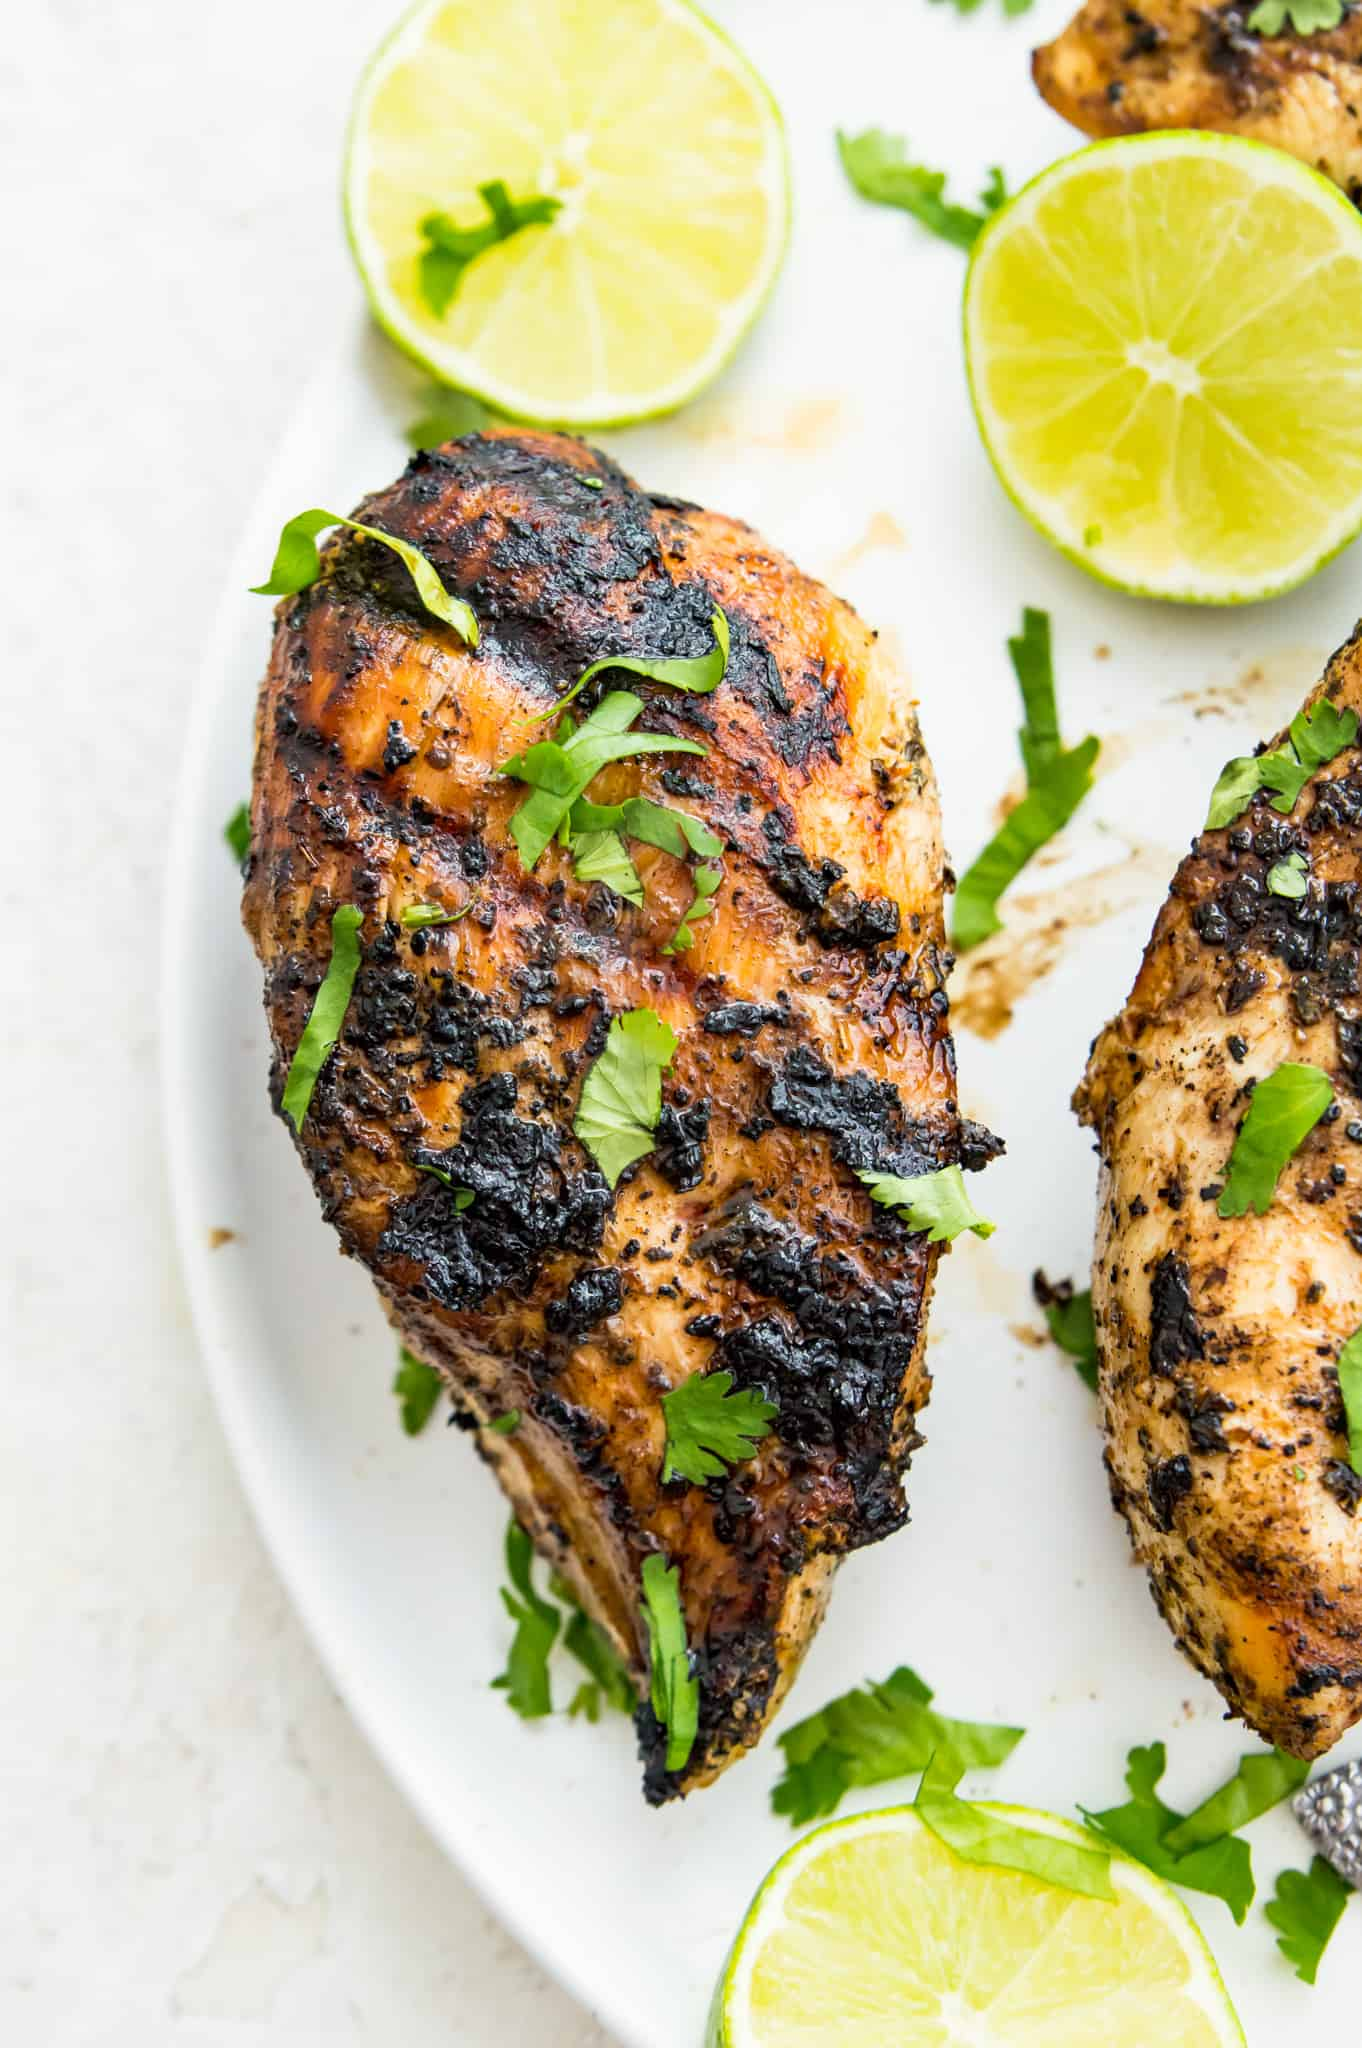 Overhead shot of charred grilled Mexican chicken garnished with cilantro and surrounded by limes